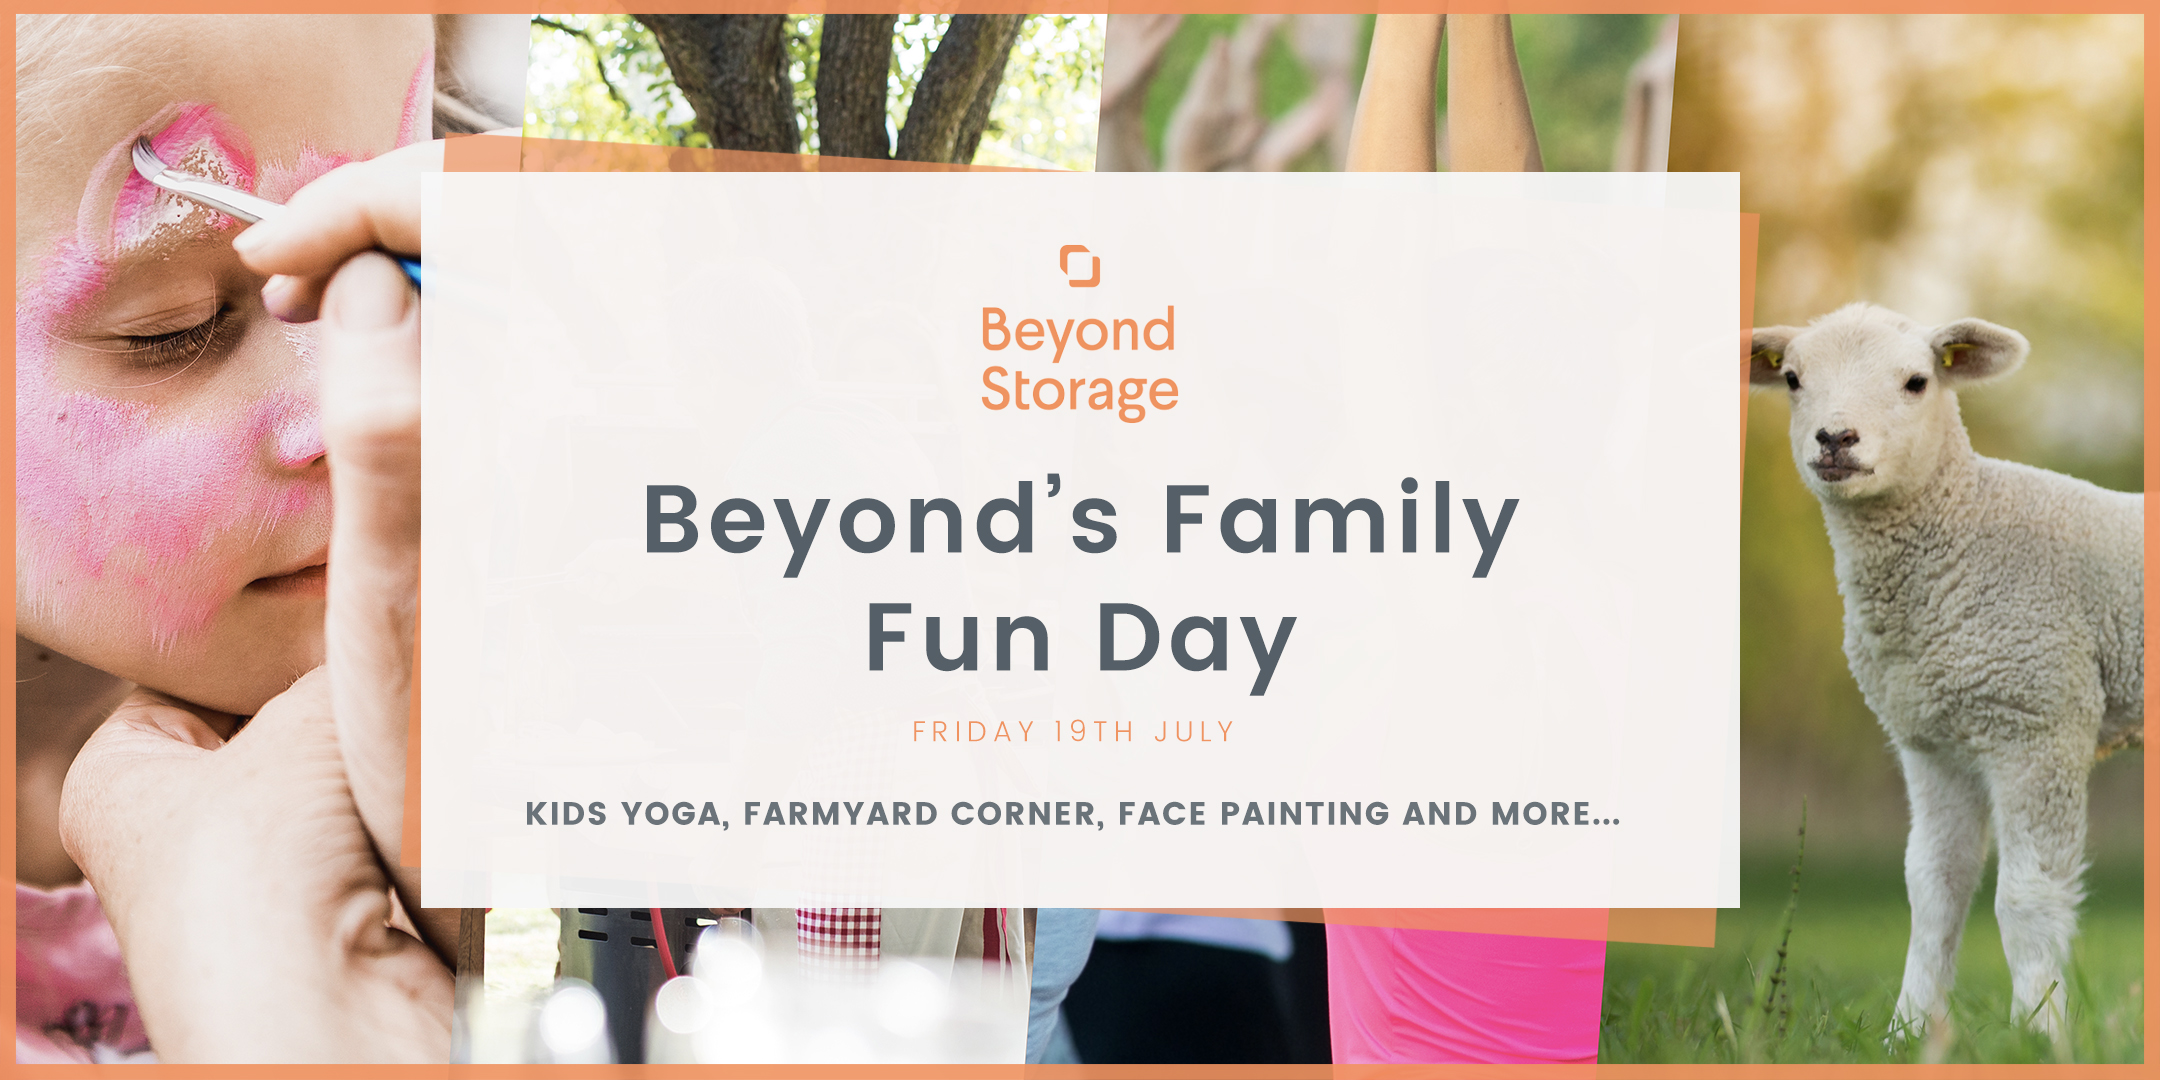 Beyond's Family Fun Day